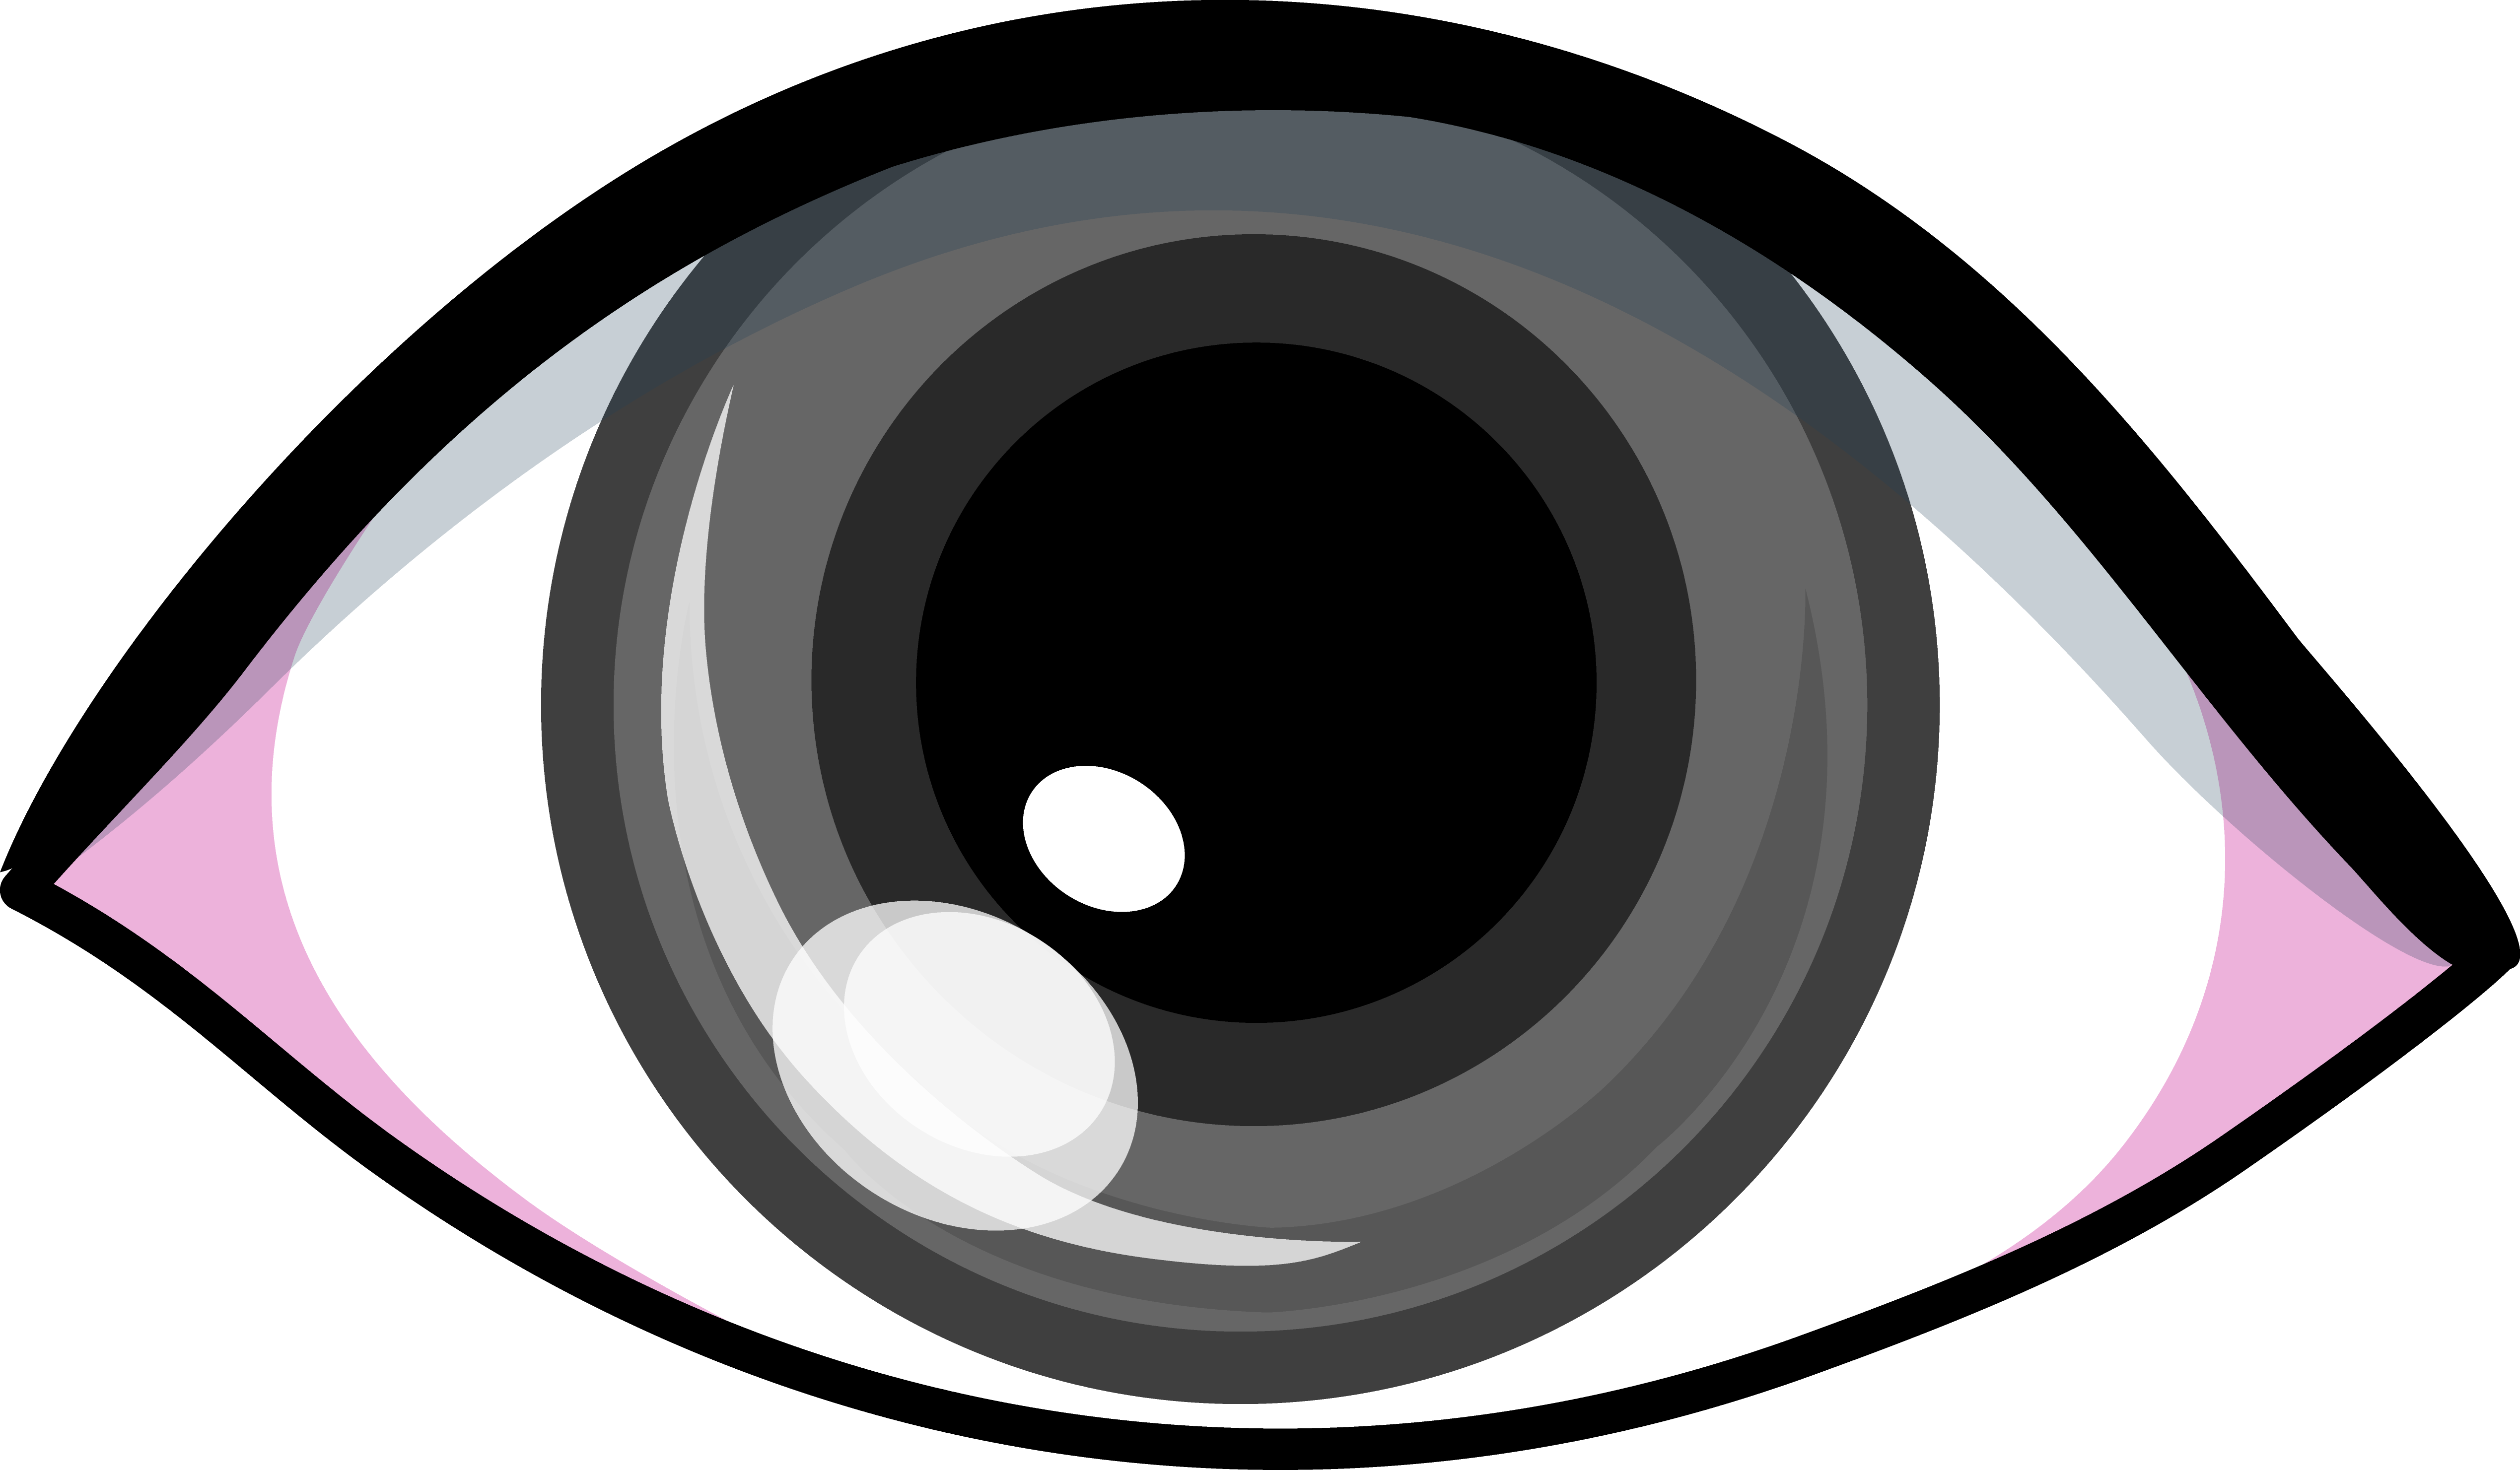 Eyes on grey background clipart.